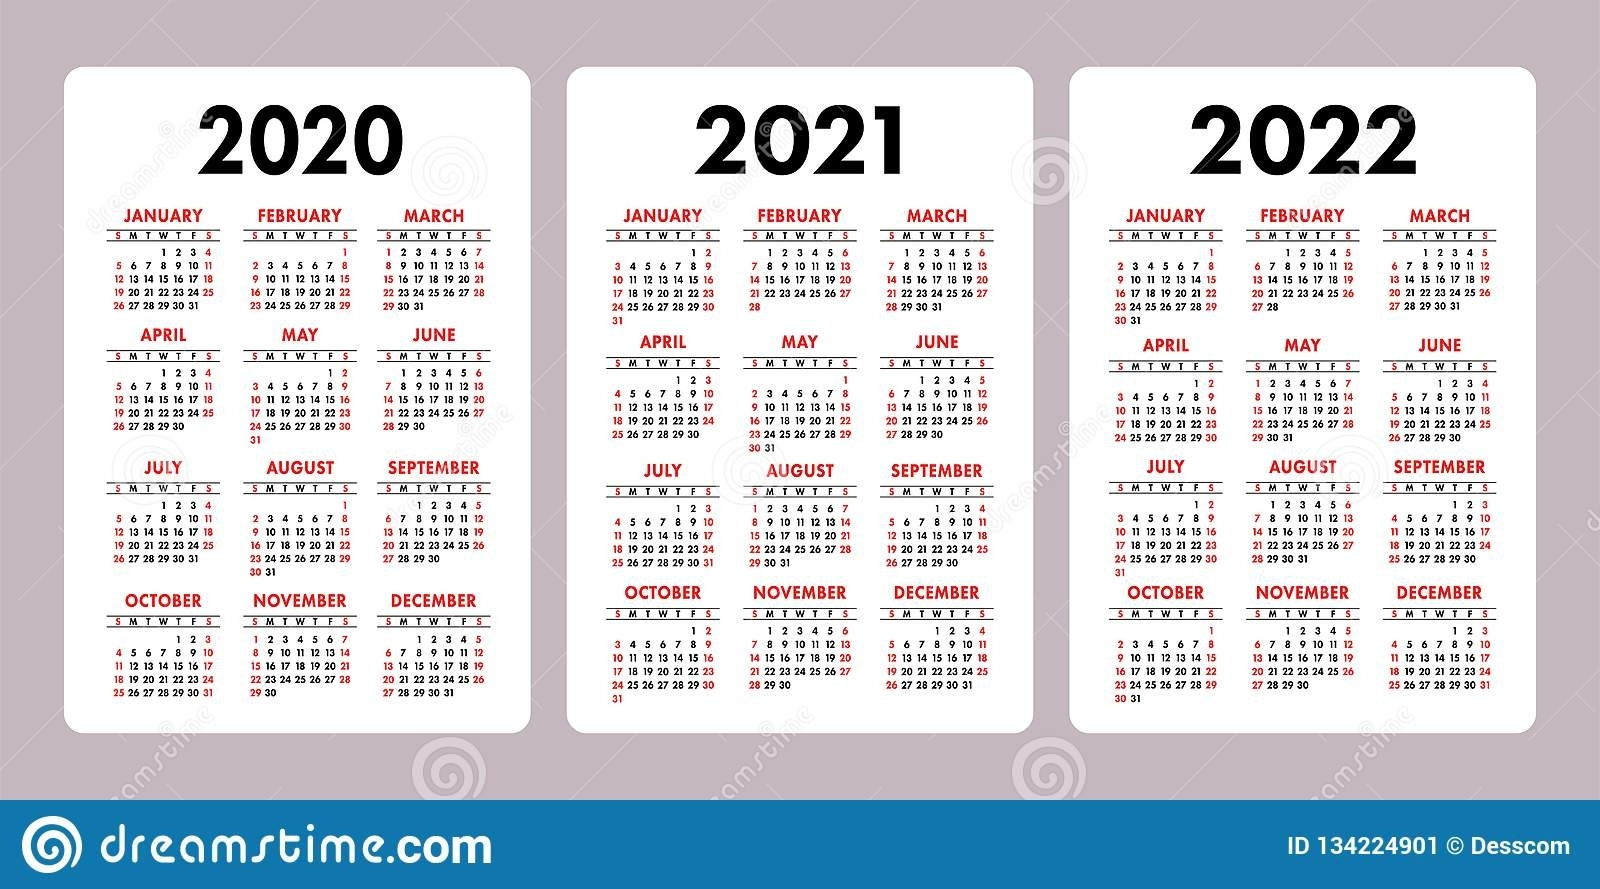 Calendar 2020, 2021, 2022 Years. Vertical Vector Calender pertaining to Calendar For 2020 2021 2022